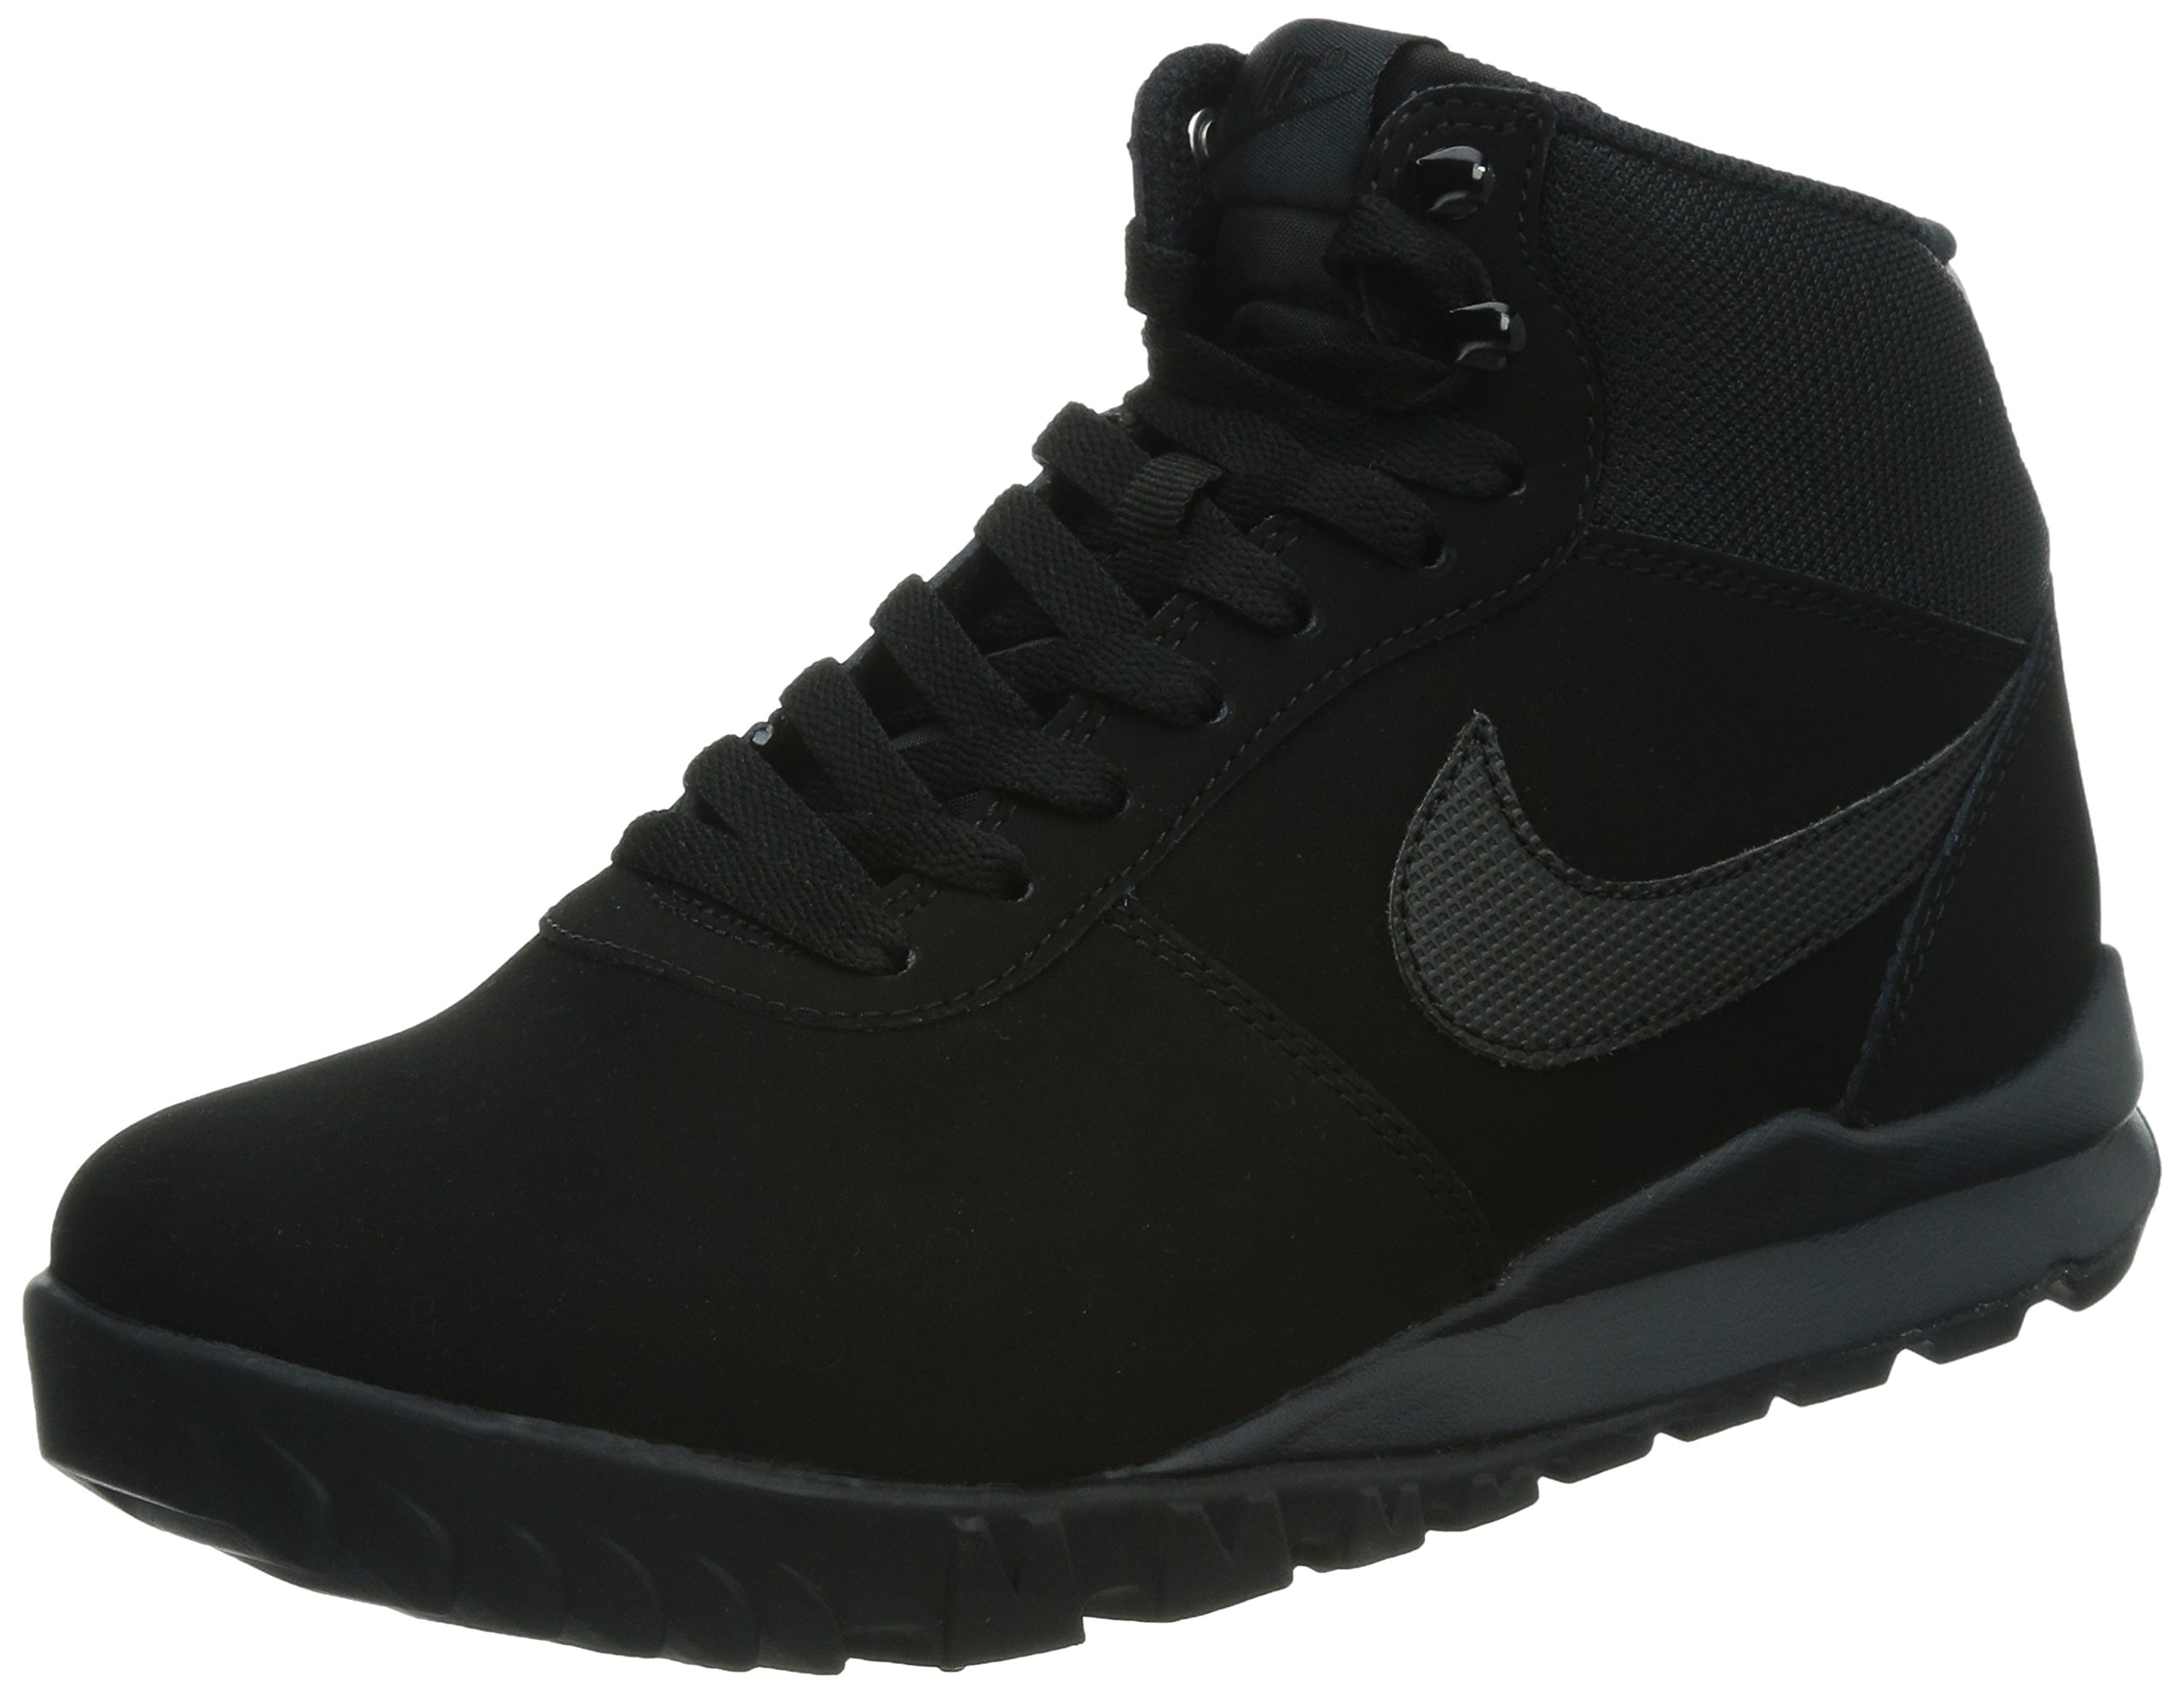 NIKE Men's Hoodland Suede Black/Black/Anthracite Boot 7.5 Men US